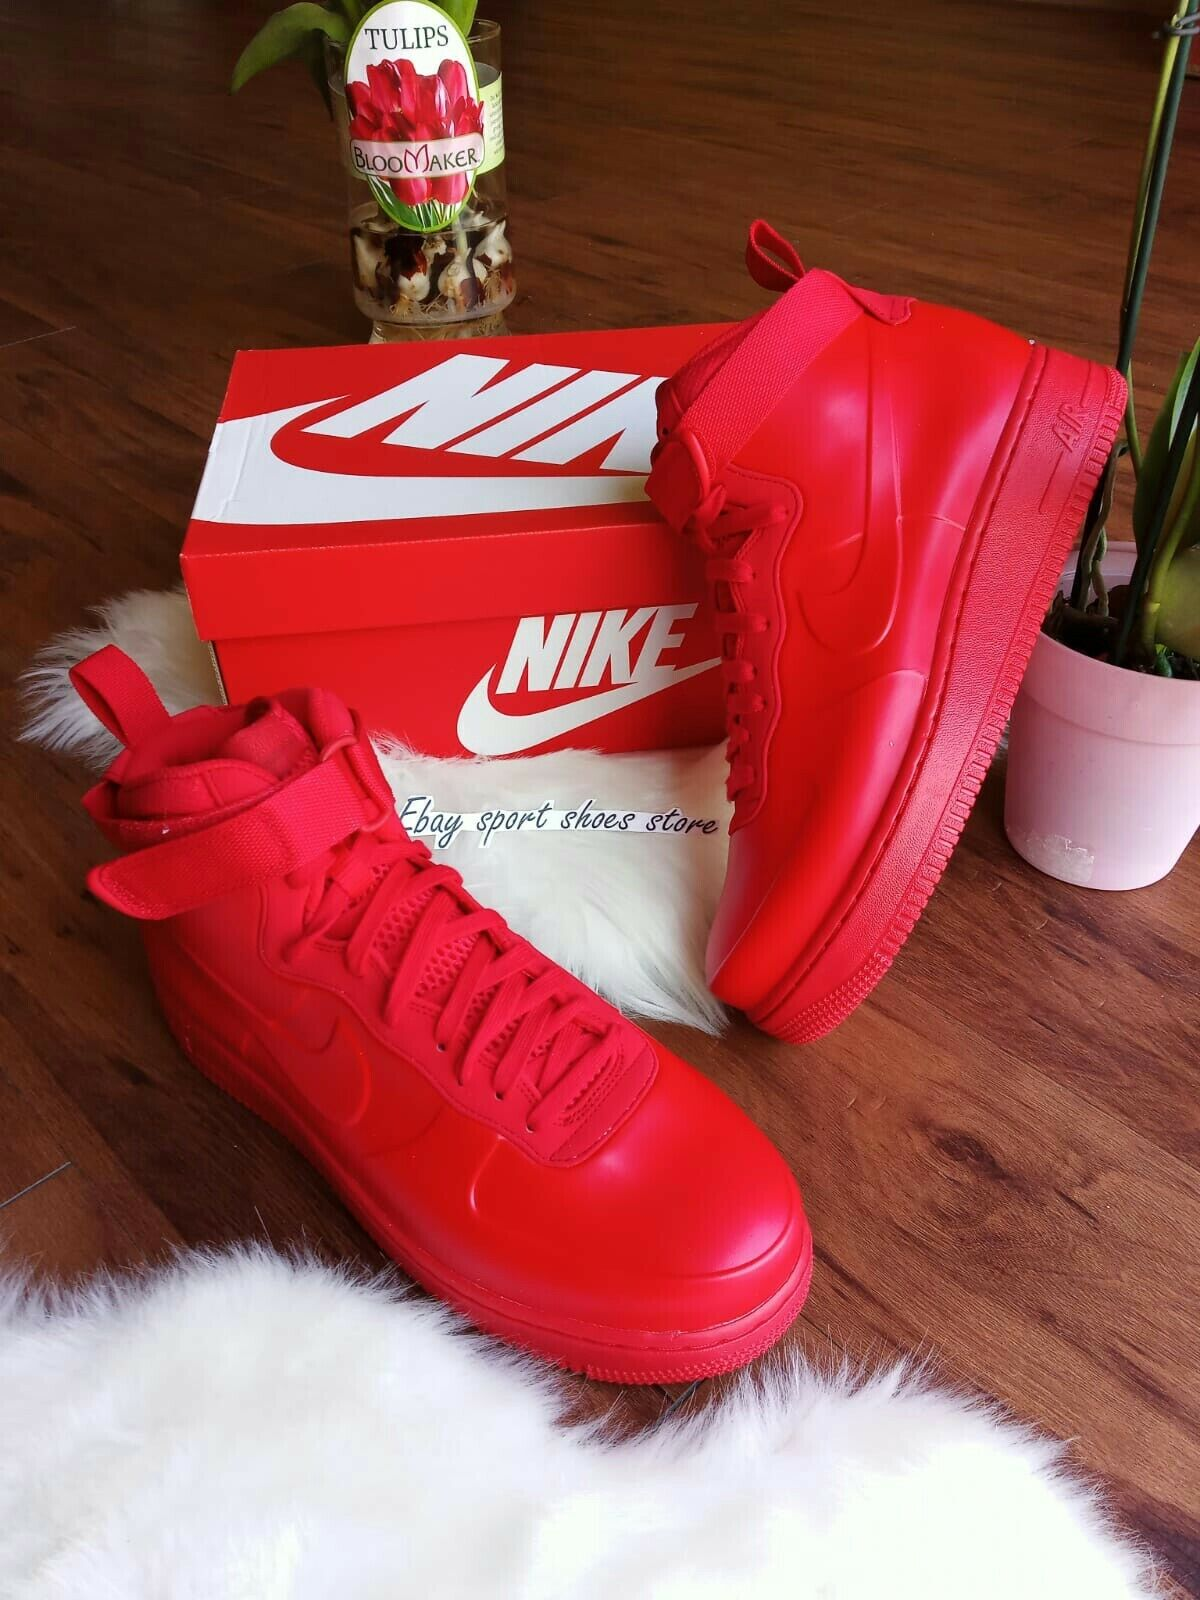 10 para Hombre Nike Force 1 1 1 Foamposite Rojo BV1172 Air 600 runing zapatos a761f5